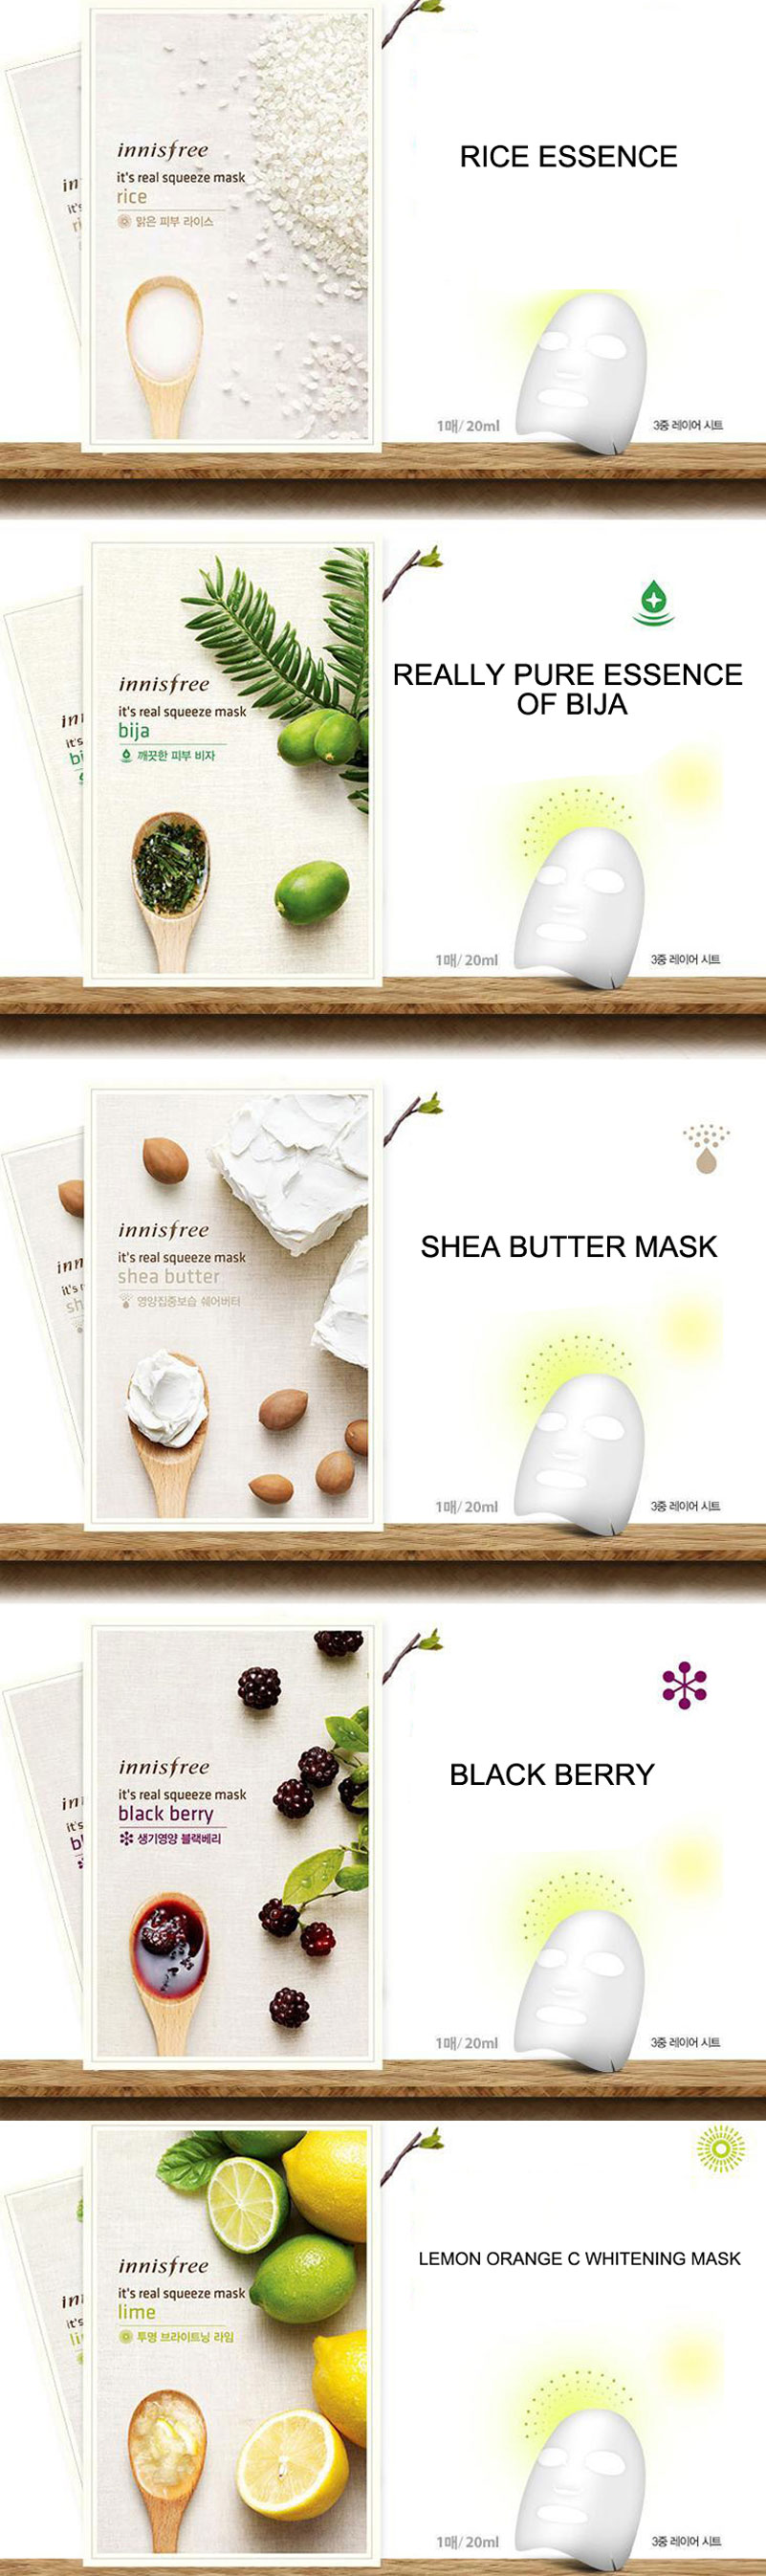 Buy Innisfree Mask Its A Real Squeeze The Face Shop Black Berry Eye And Lip Areas